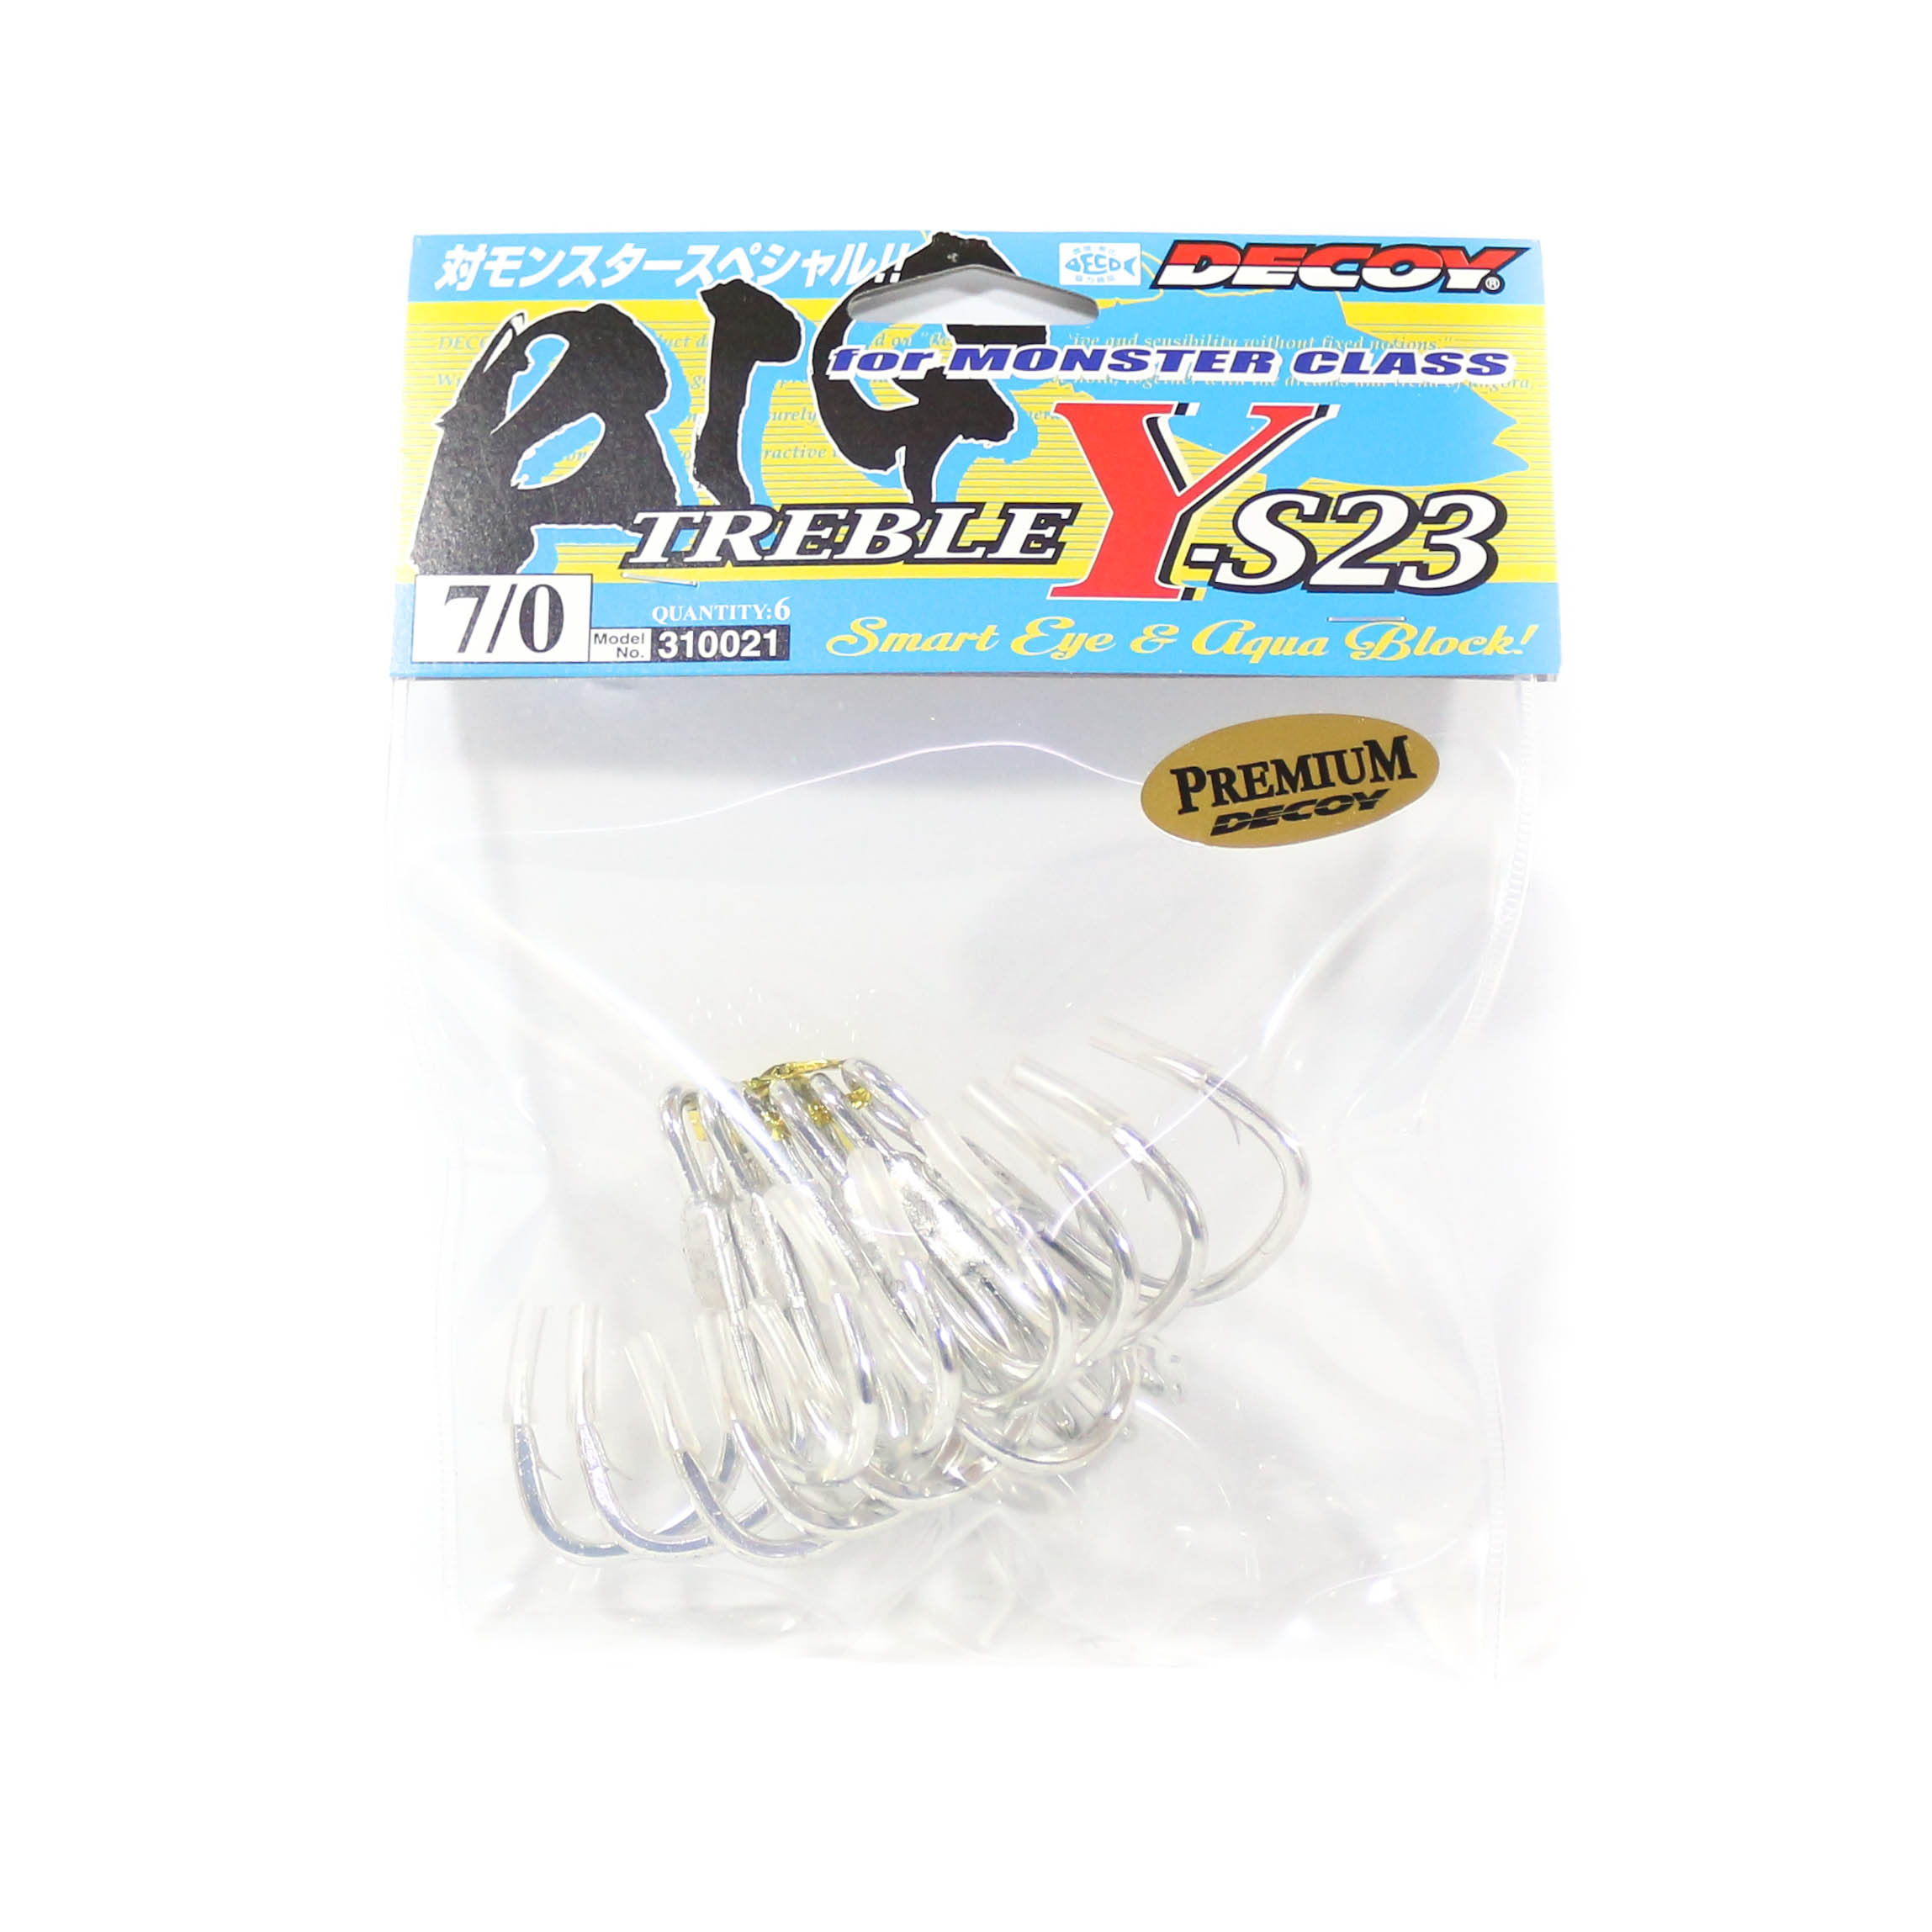 Decoy Y-S23 Treble Hook Heavy Duty Big Size 7/0 (0021)